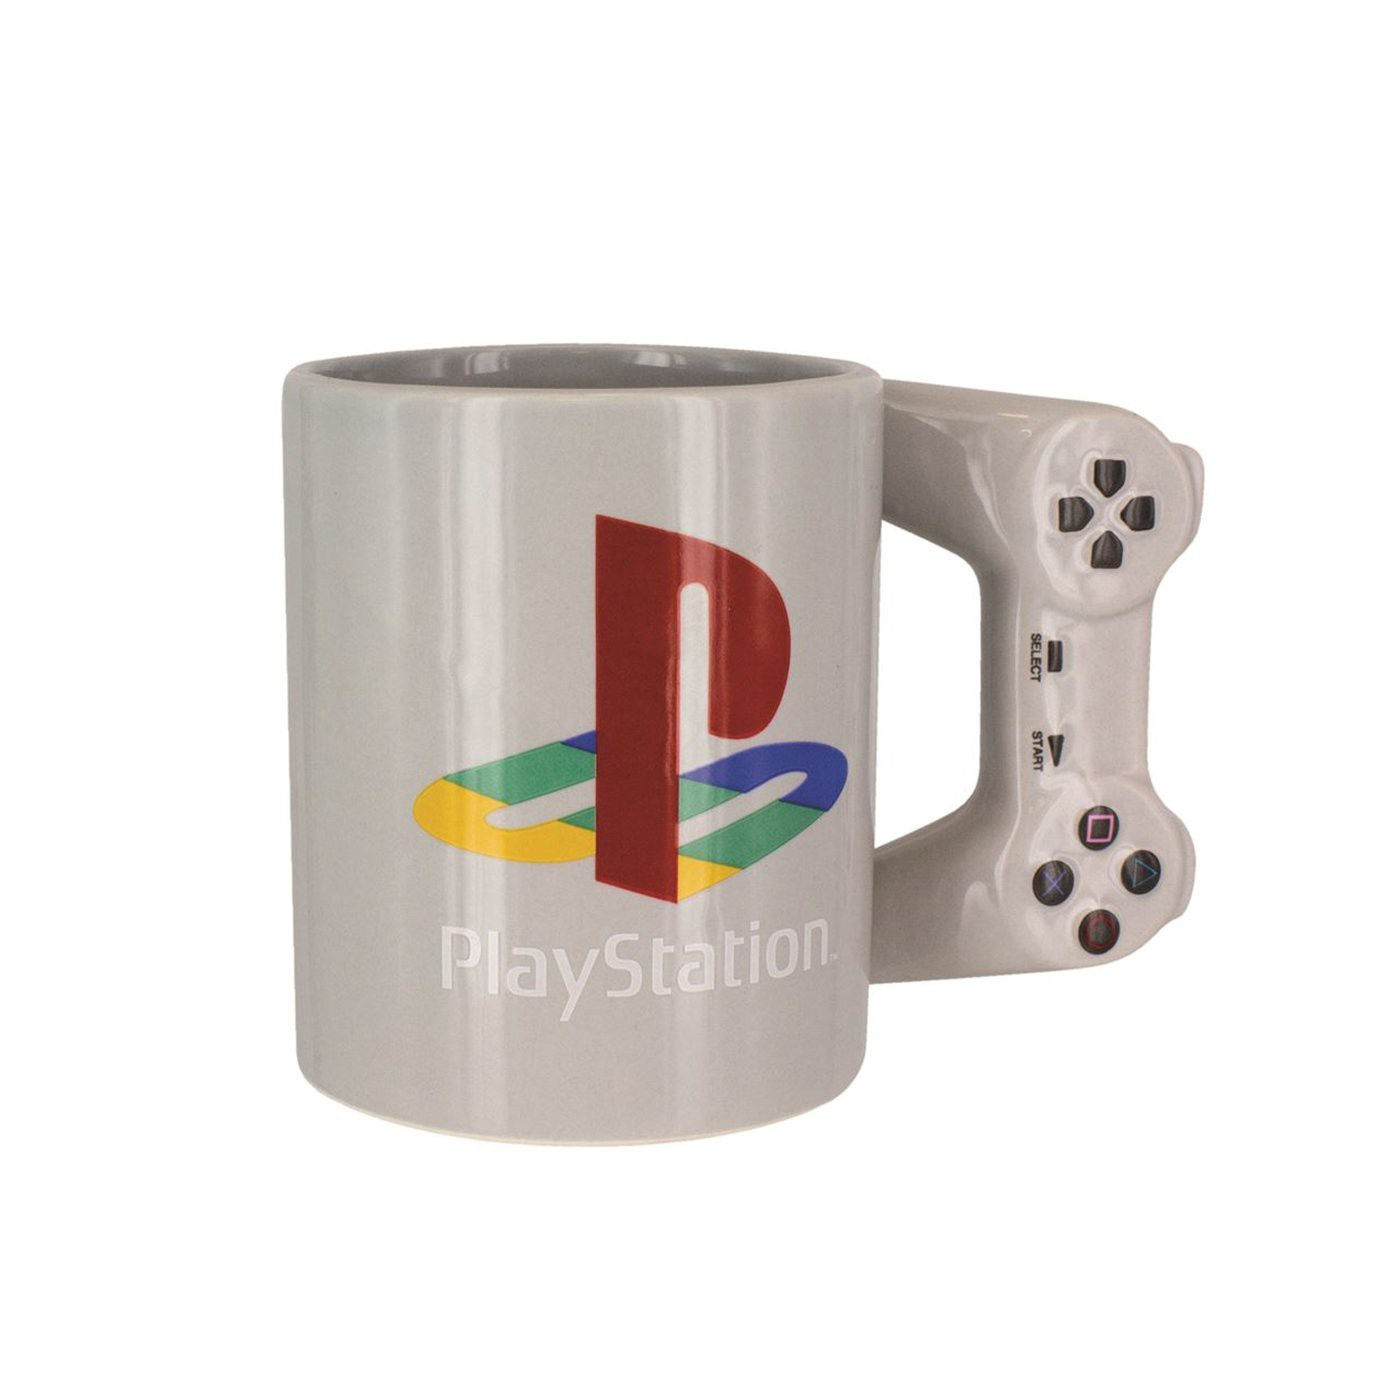 Playstation Controller Mug